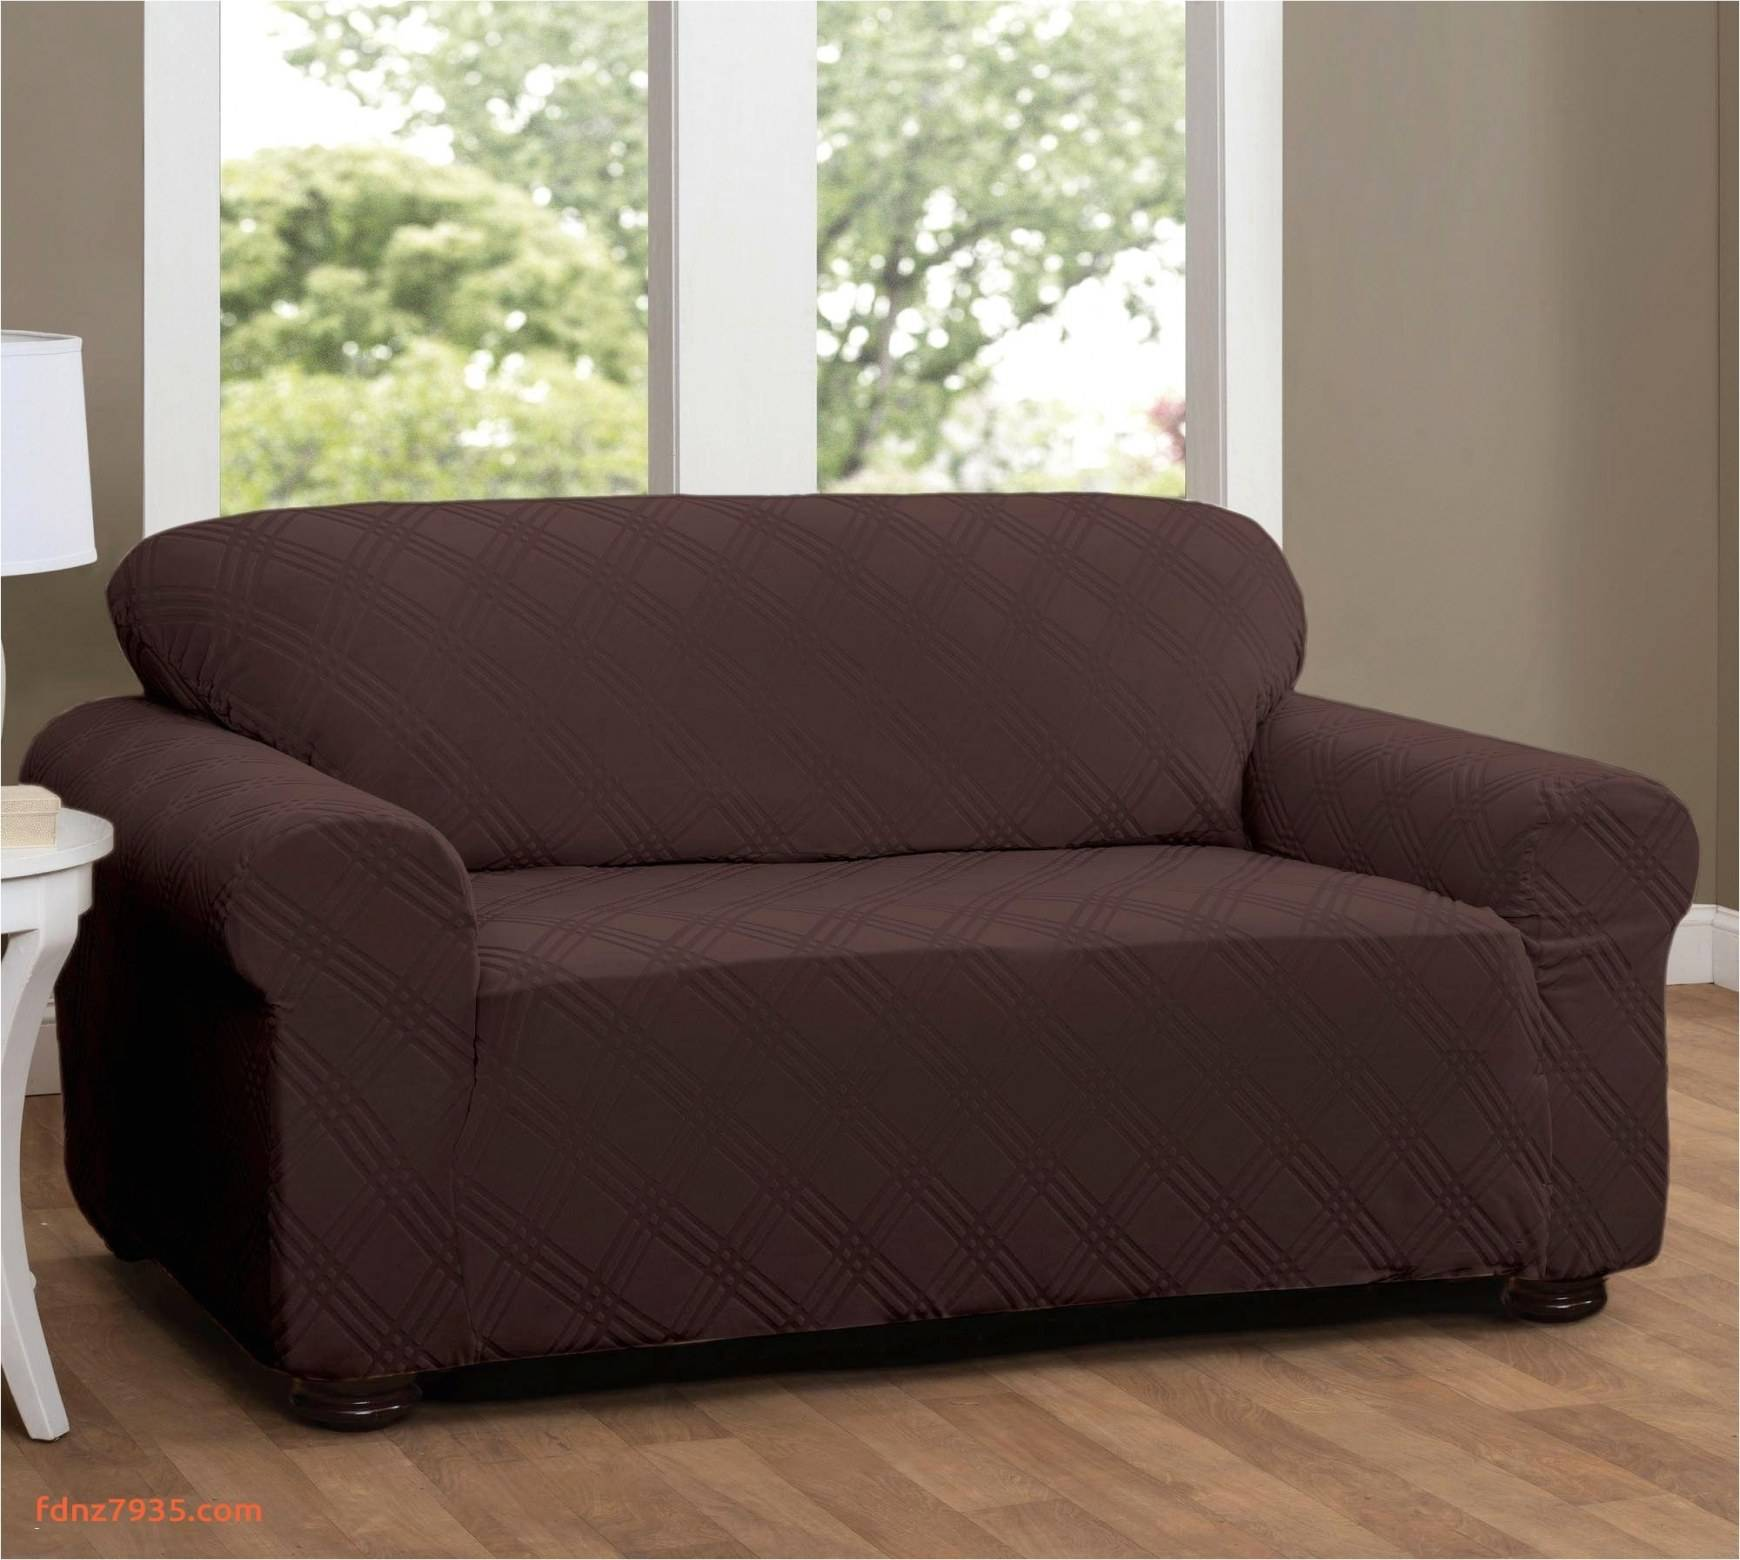 furniture design bed leather sofa bed sectional reversible sectional sofas of furniture design bed